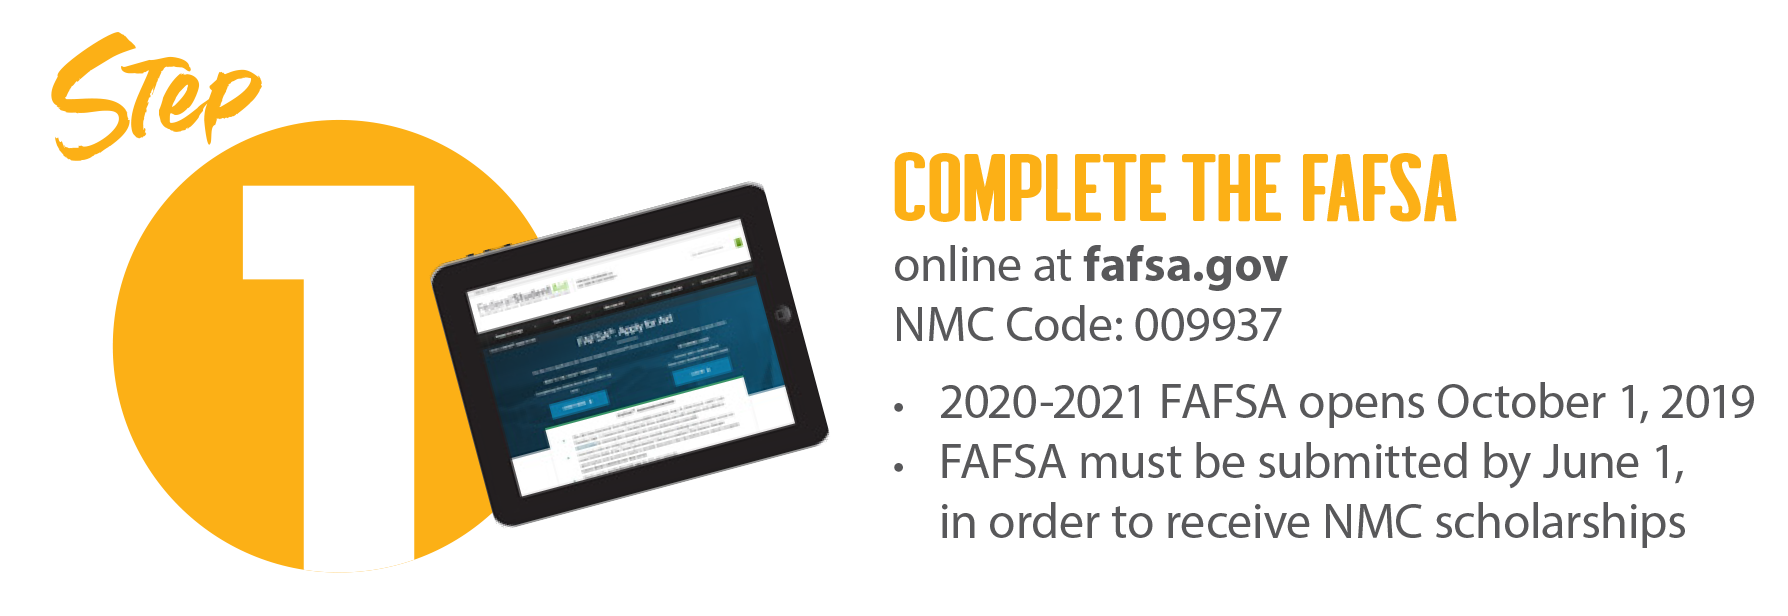 The FAFSA must be completed in order to be eligible for financial aid and scholarships.